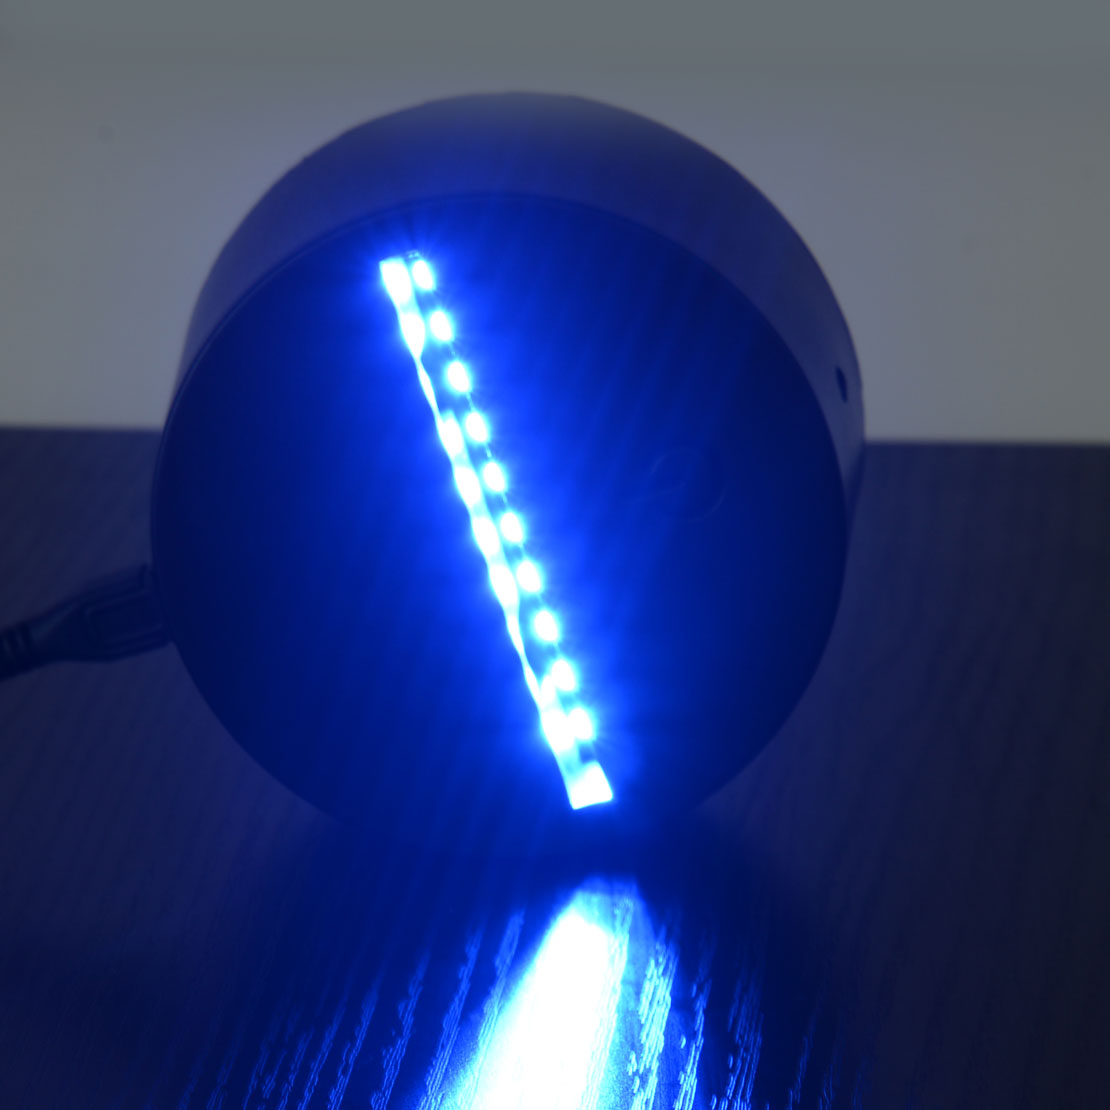 Details About Led Lamp Base Night Light Acrylic Plate Panel Usb Cable Remote